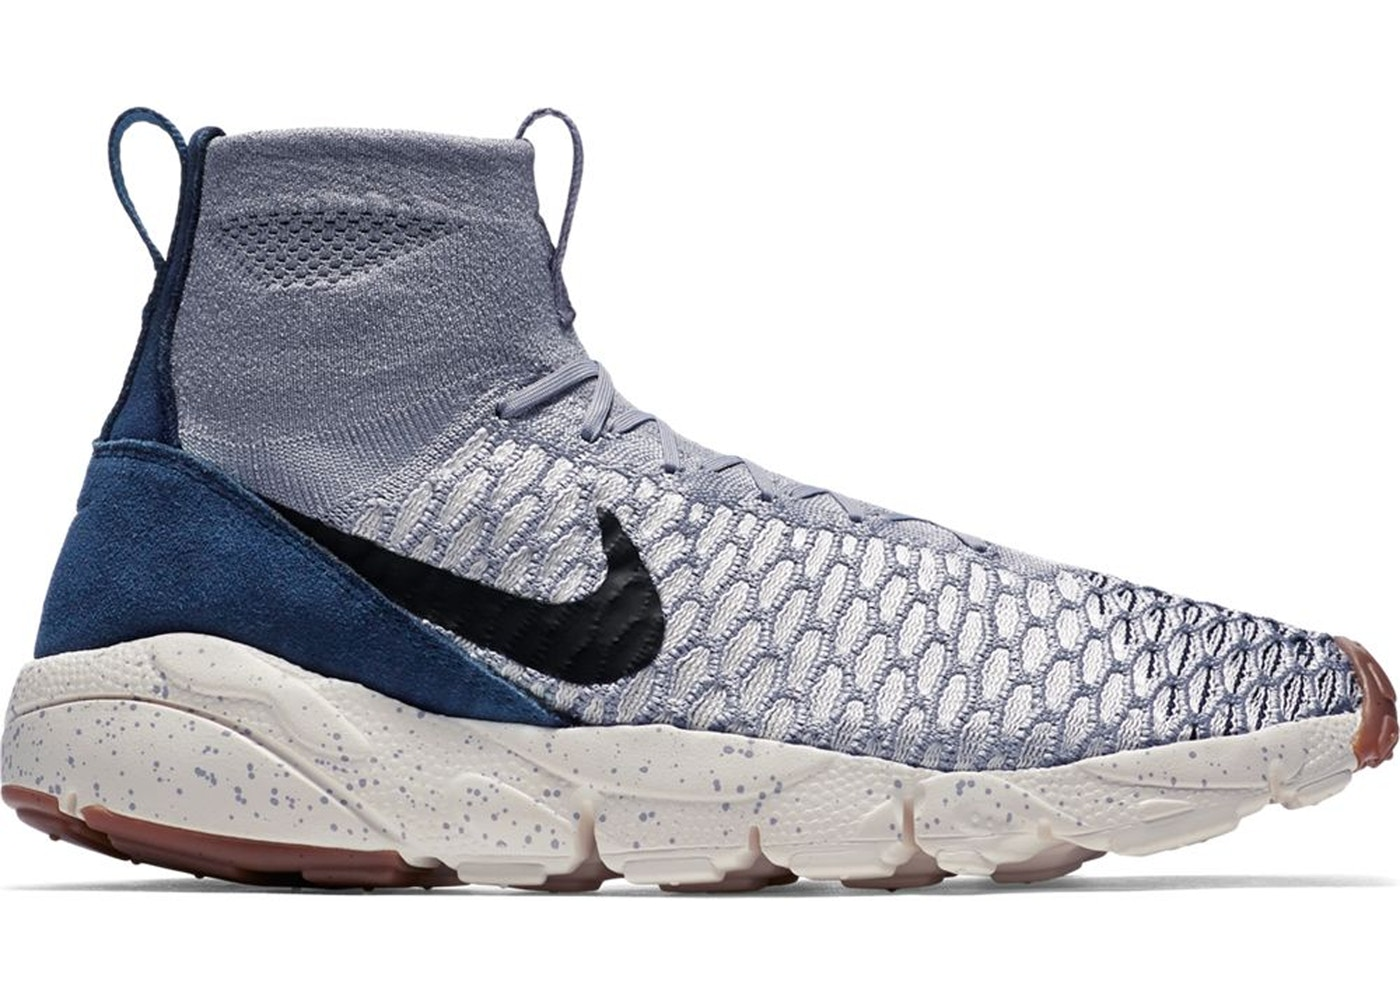 barba Rubí compresión  Nike Air Footscape Magista Flyknit Wolf Grey Dark Obsidian - 816560-001